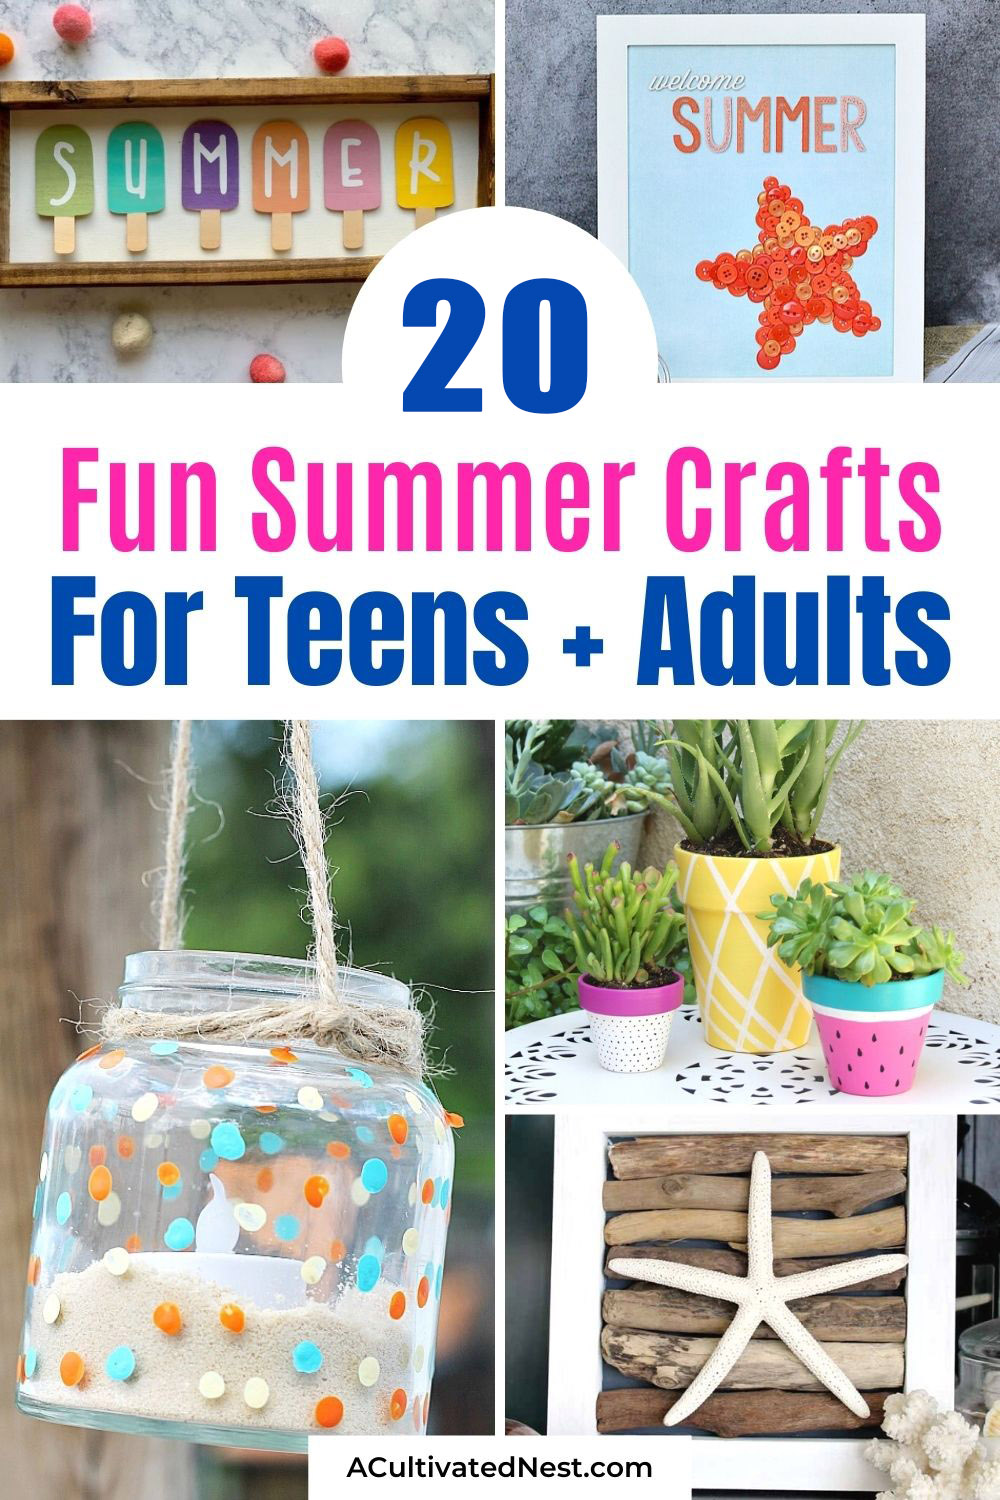 20 Fun Summer Crafts- Want to avoid boredom this summer? Then you need to check out these fun summer crafts that are perfect for teens and adults! They're so cute, and so fun to make!   #crafts #summerCrafts #summerDIYs #DIY #ACultivatedNest